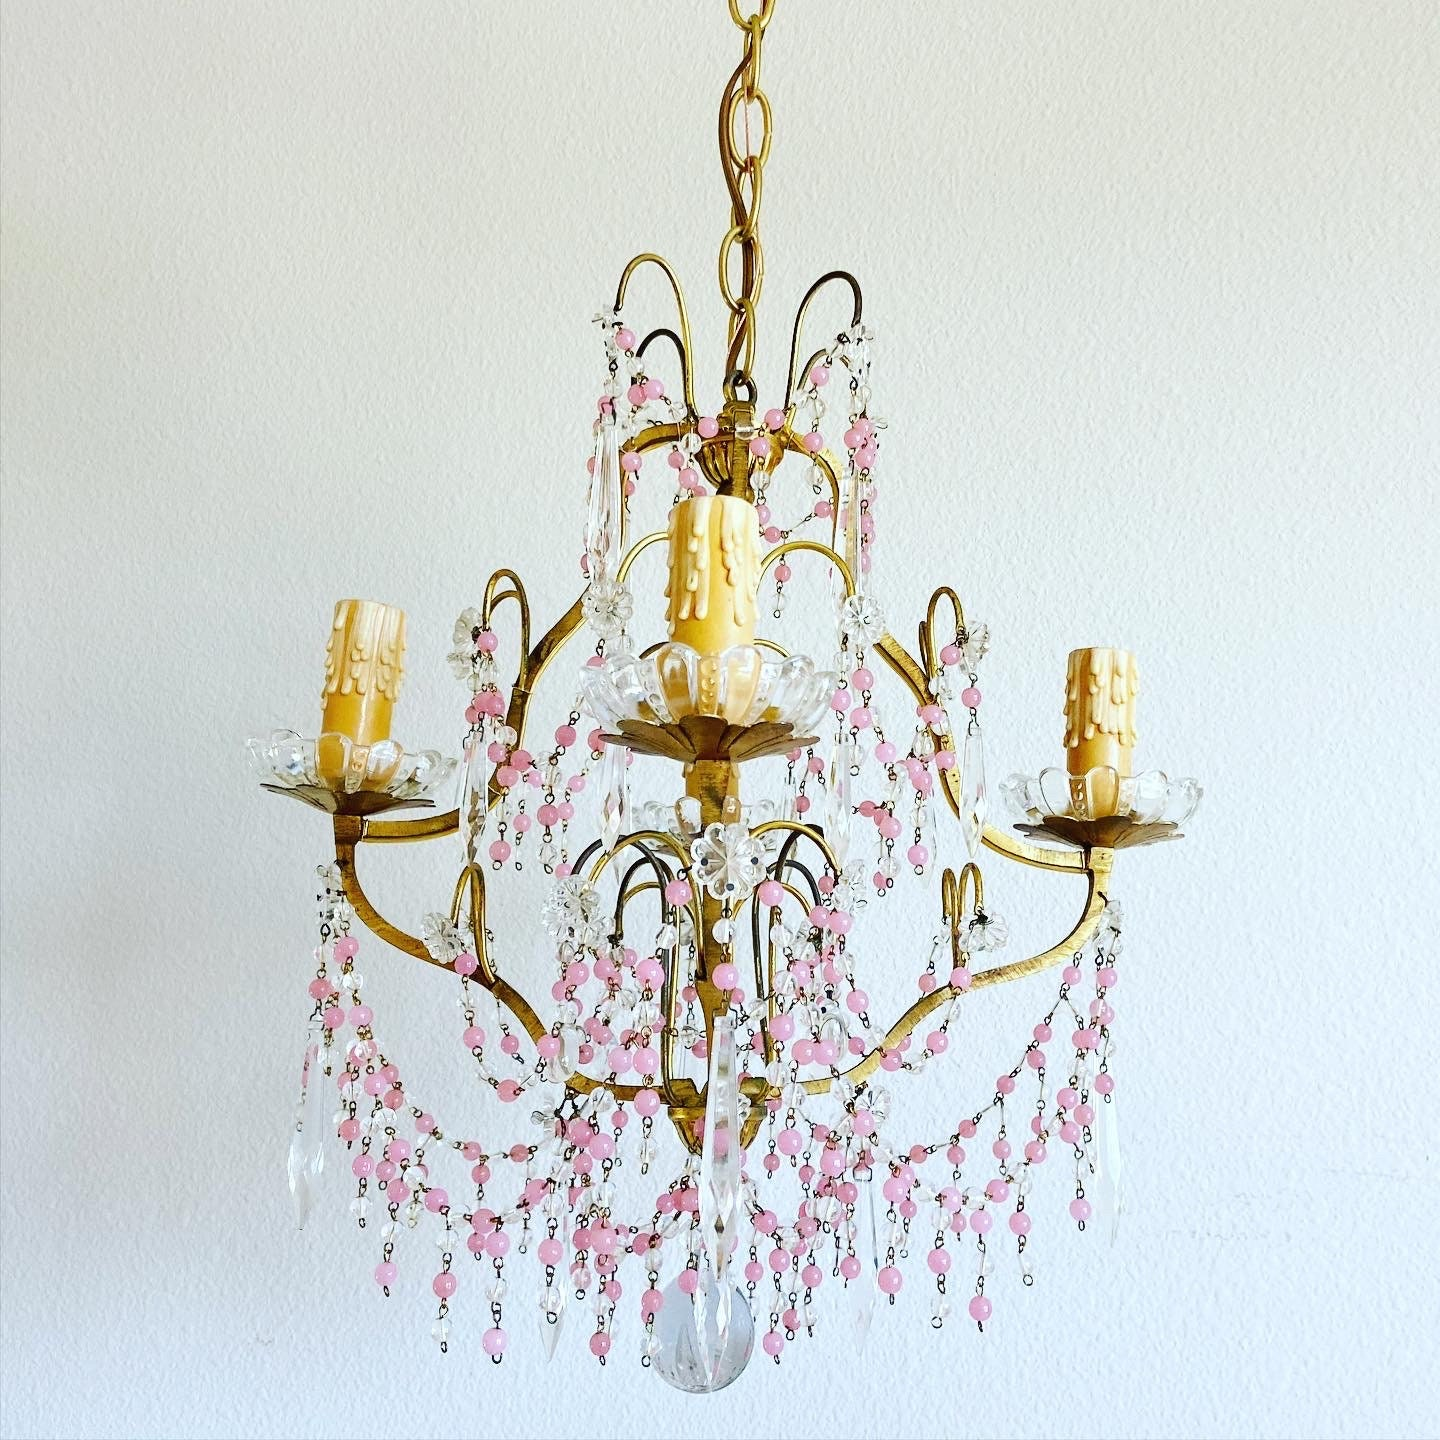 Image of: Midcentury French Crystal Chandelier